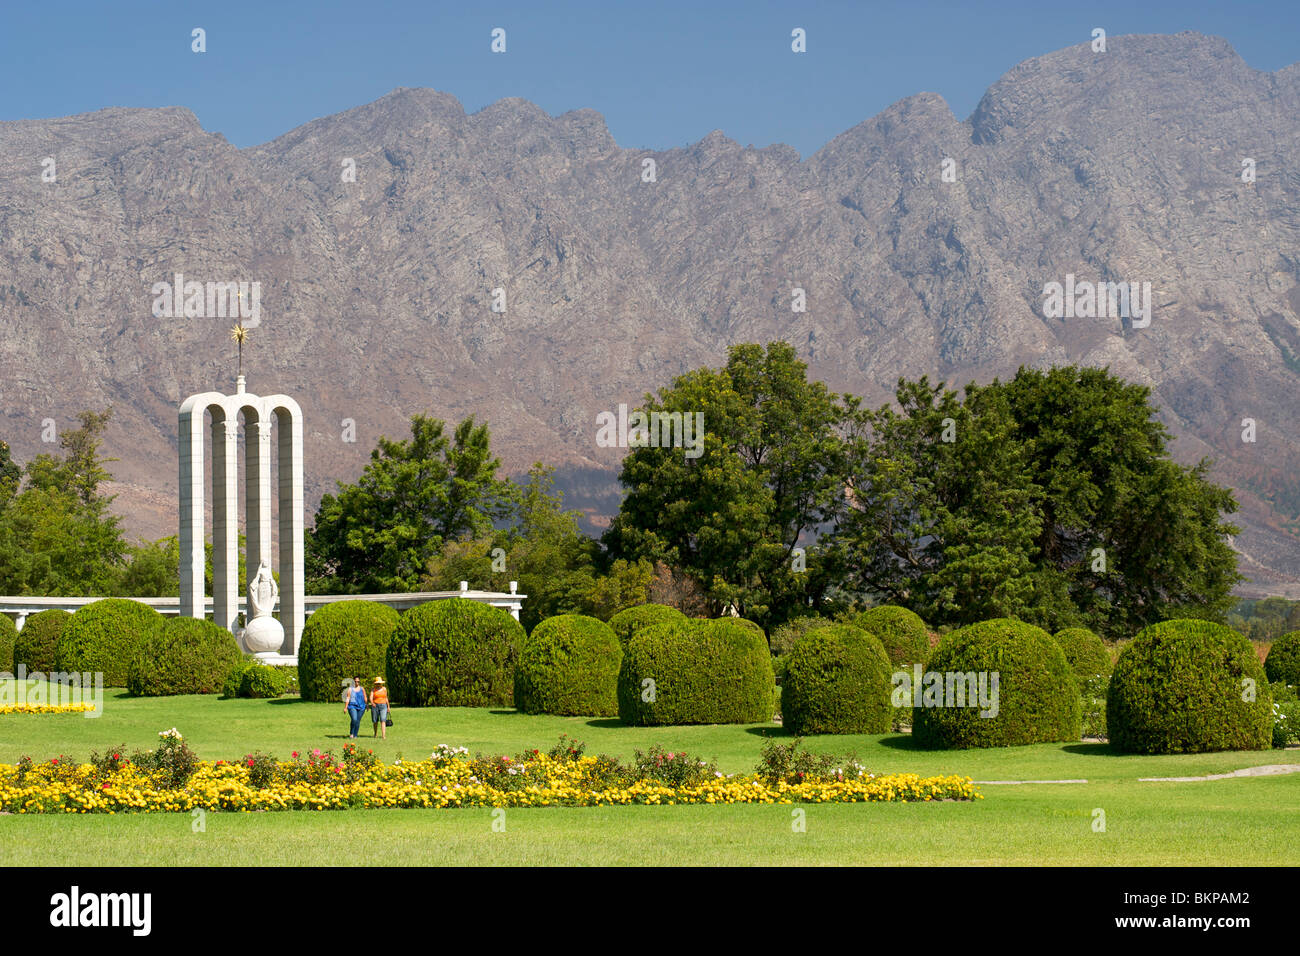 The Huguenot monument in the town of Franschhoek, Western Cape Province, South Africa. - Stock Image